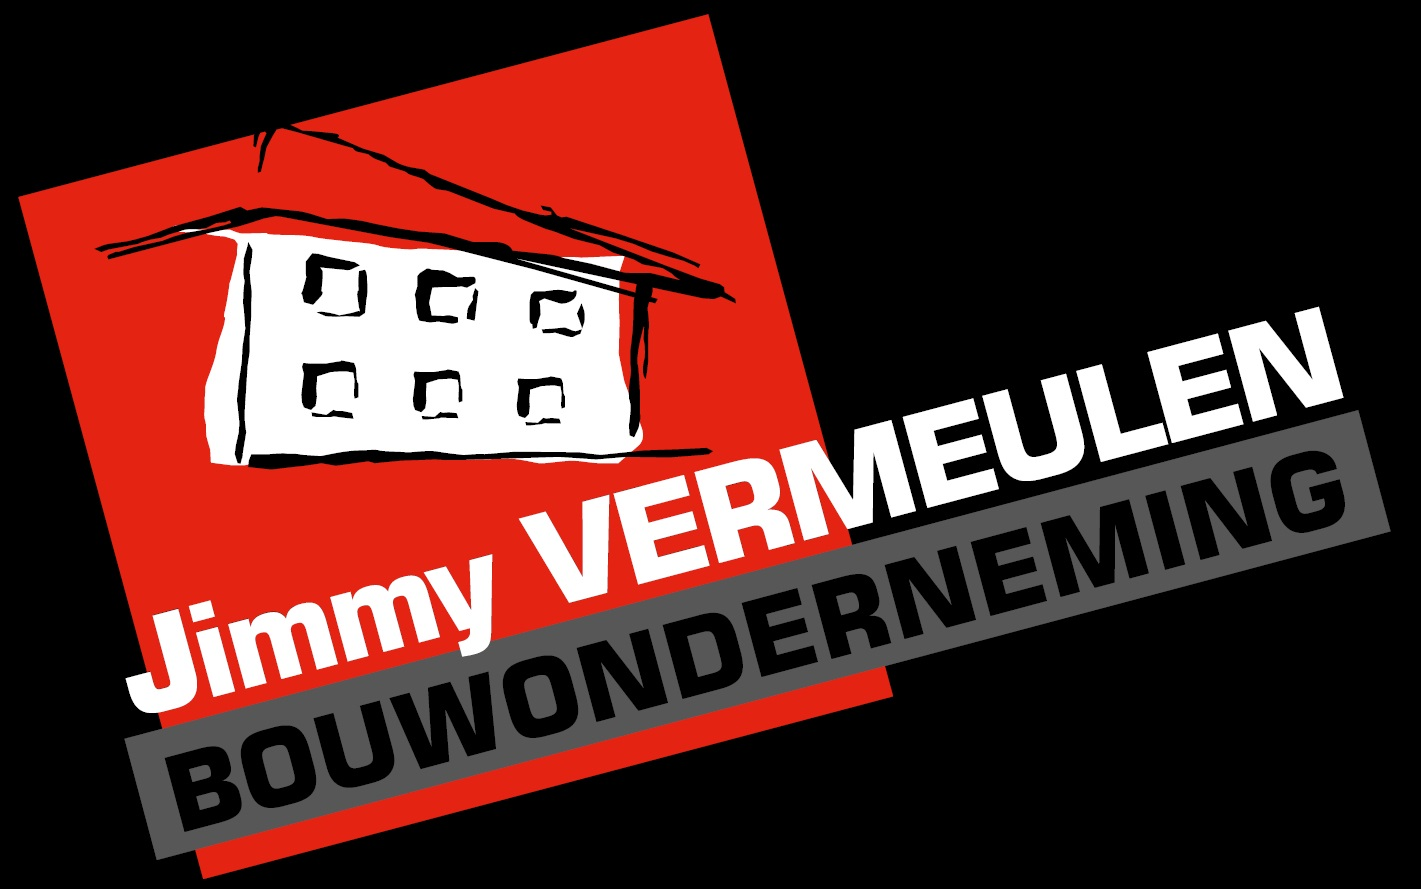 Jimmy Vermeulen